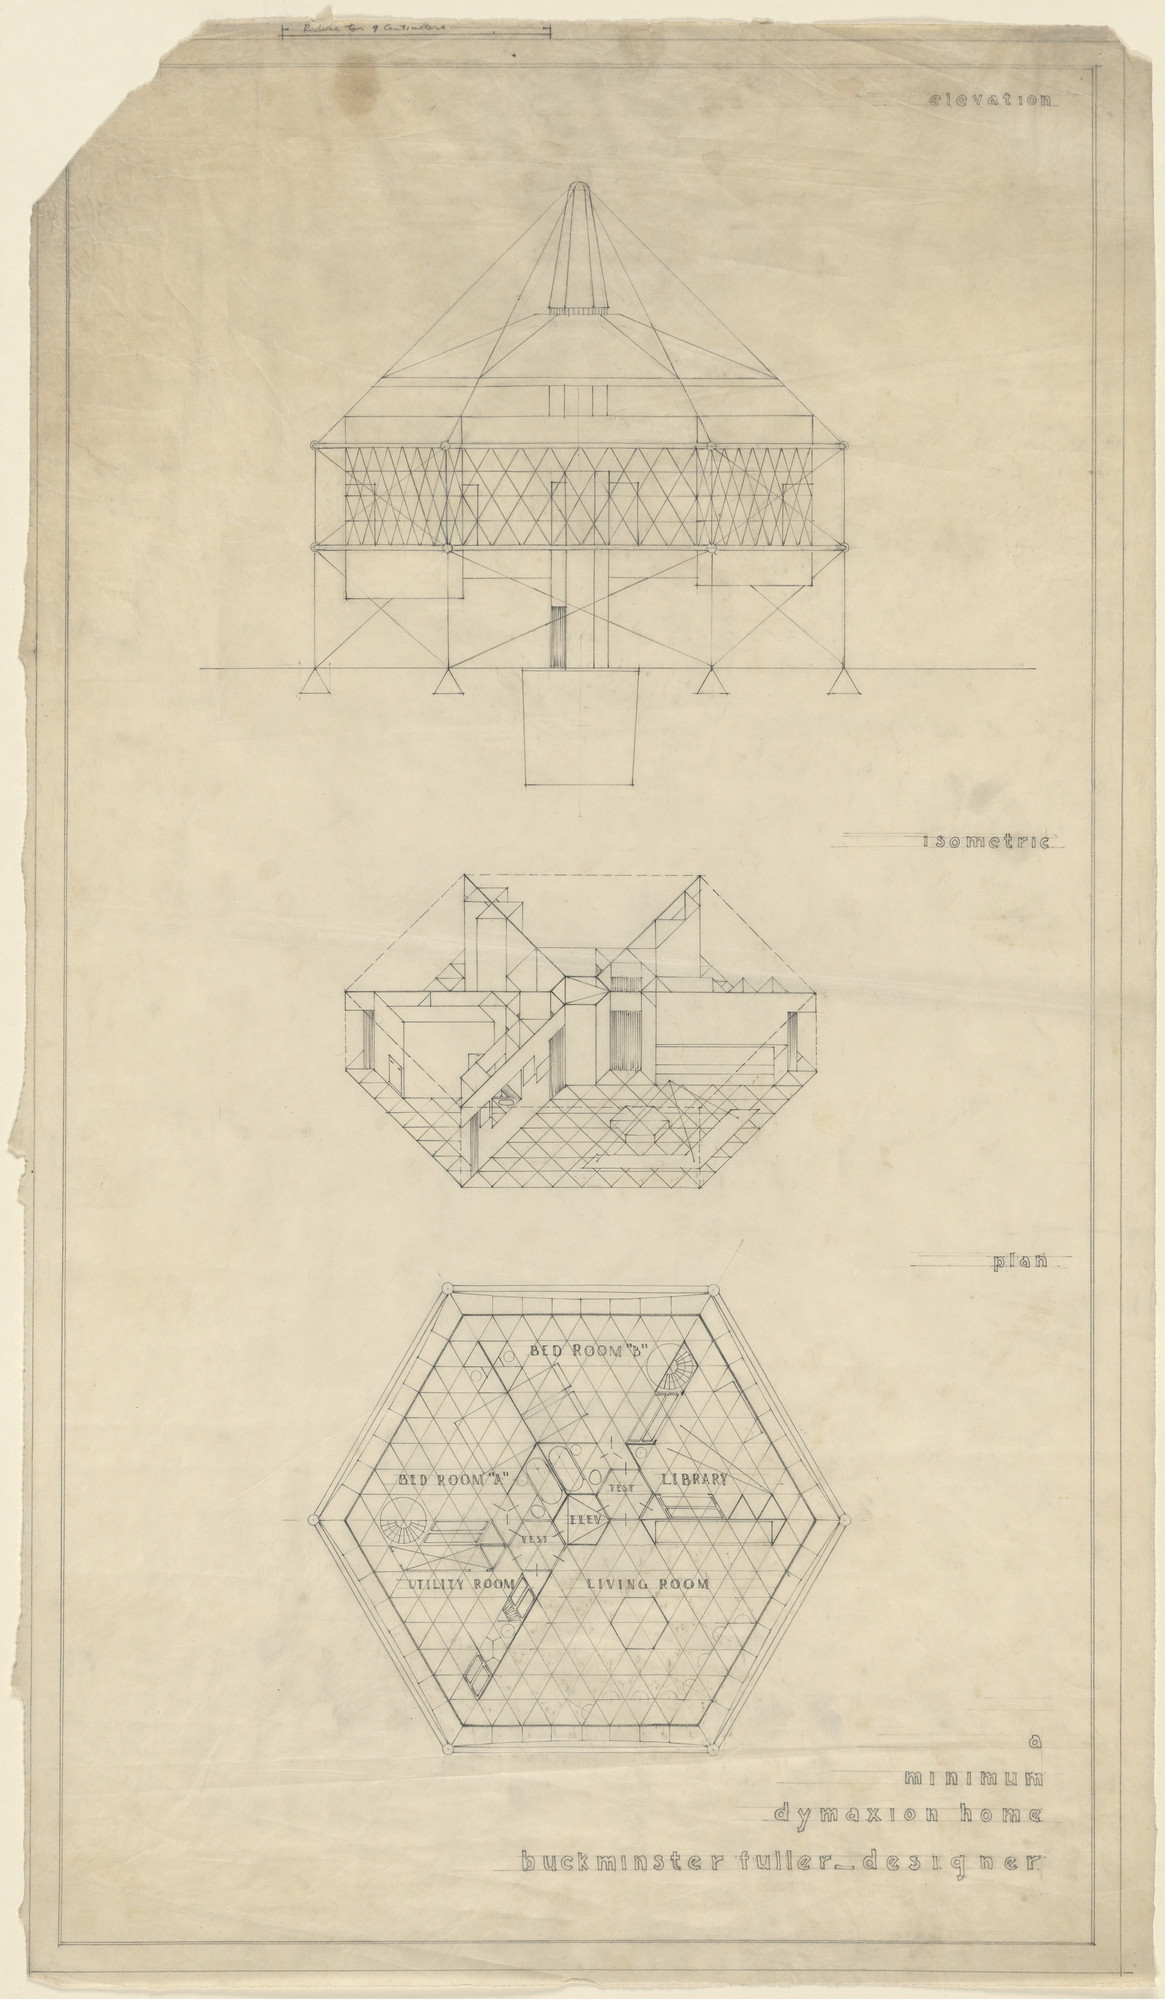 R Buckminster Fuller A Minimum Dymaxion Home Project Elevation Plan Wiring Drawing On Pinterest Car Audio Axonometric And 1927